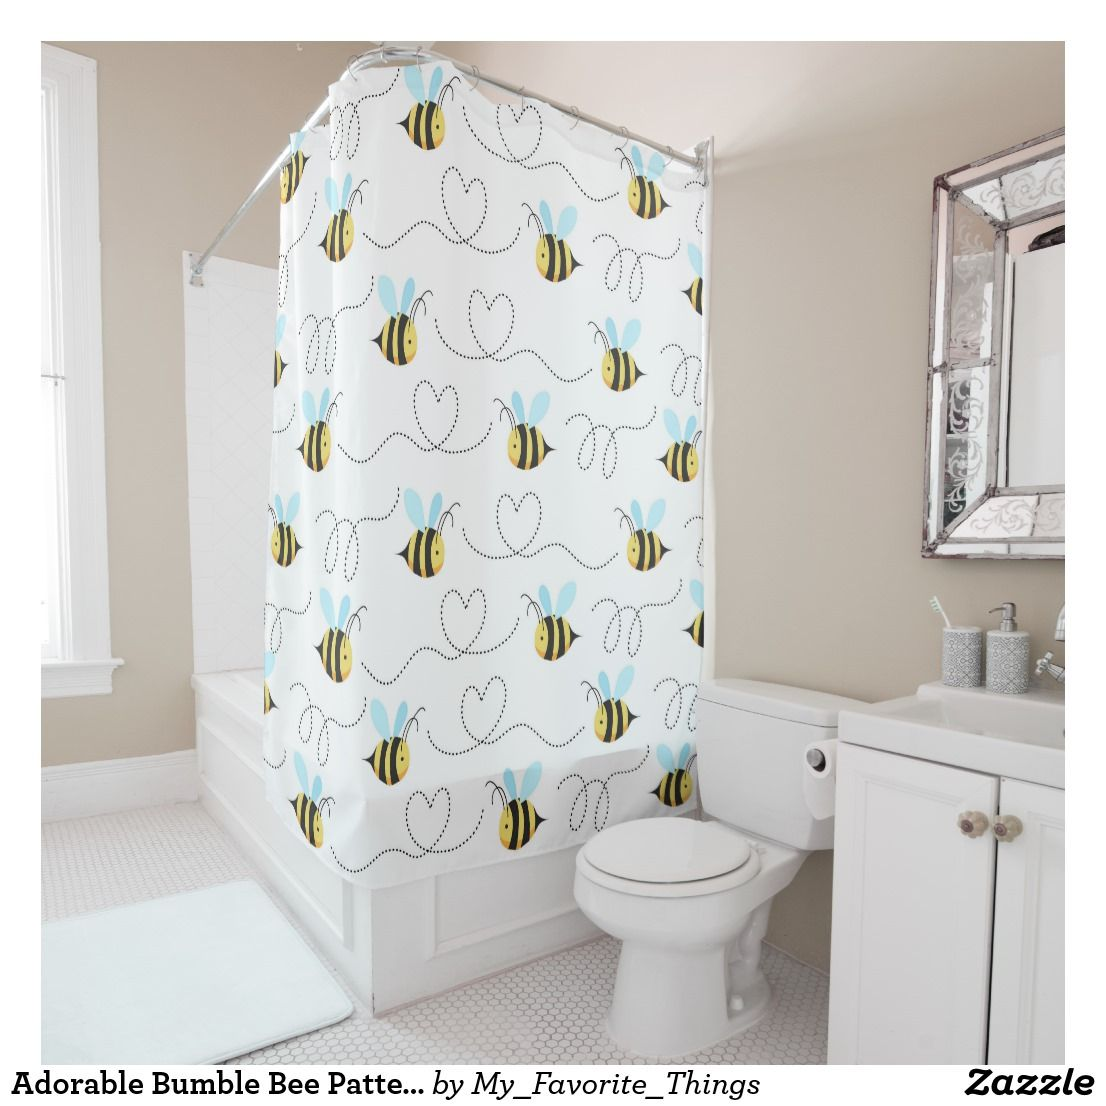 Adorable Bumble Bee Pattern Shower Curtain Zazzle Com